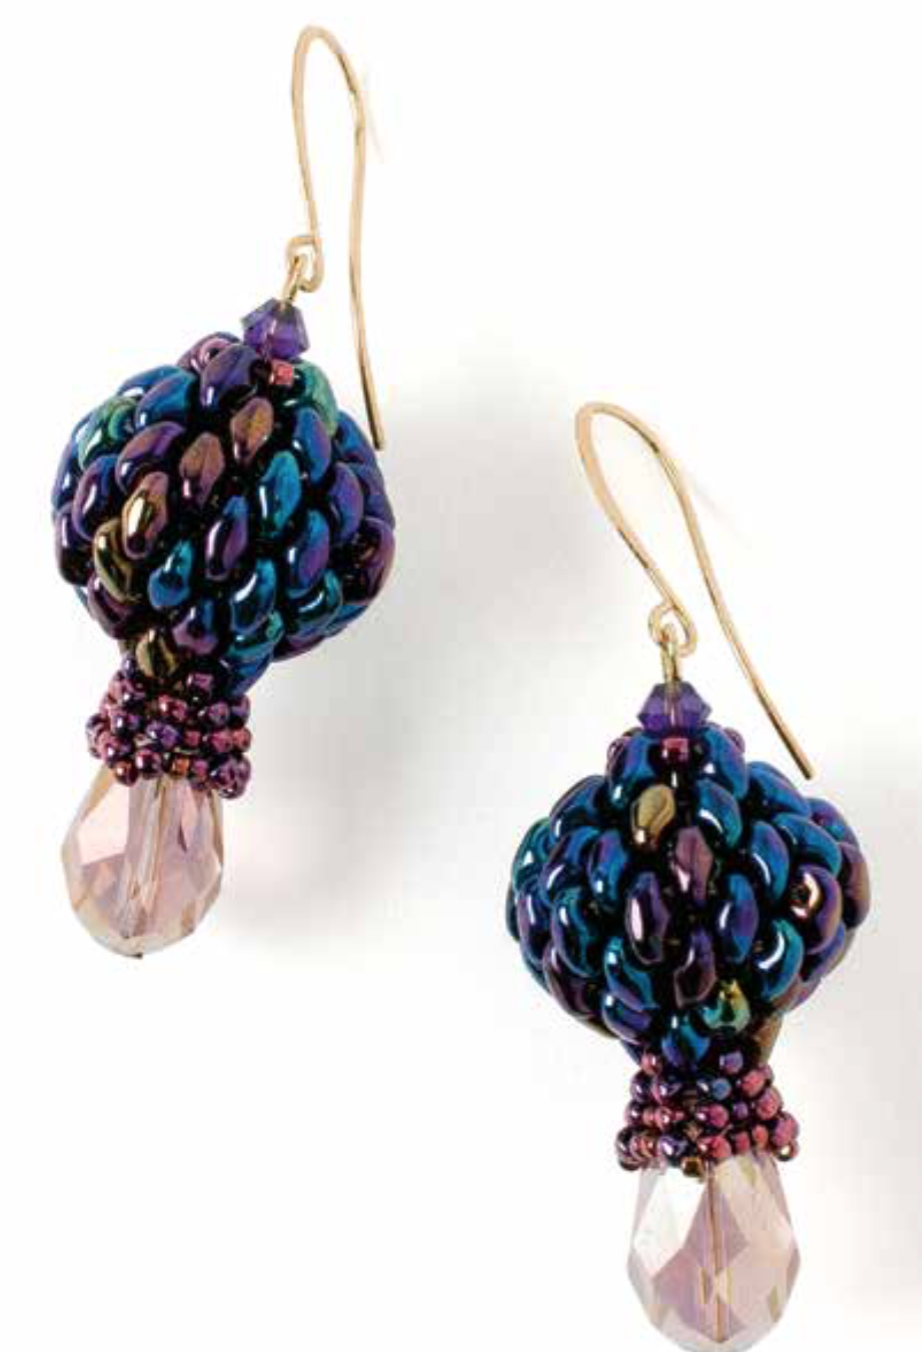 Tulip Mania earrings, by Reem Iverson